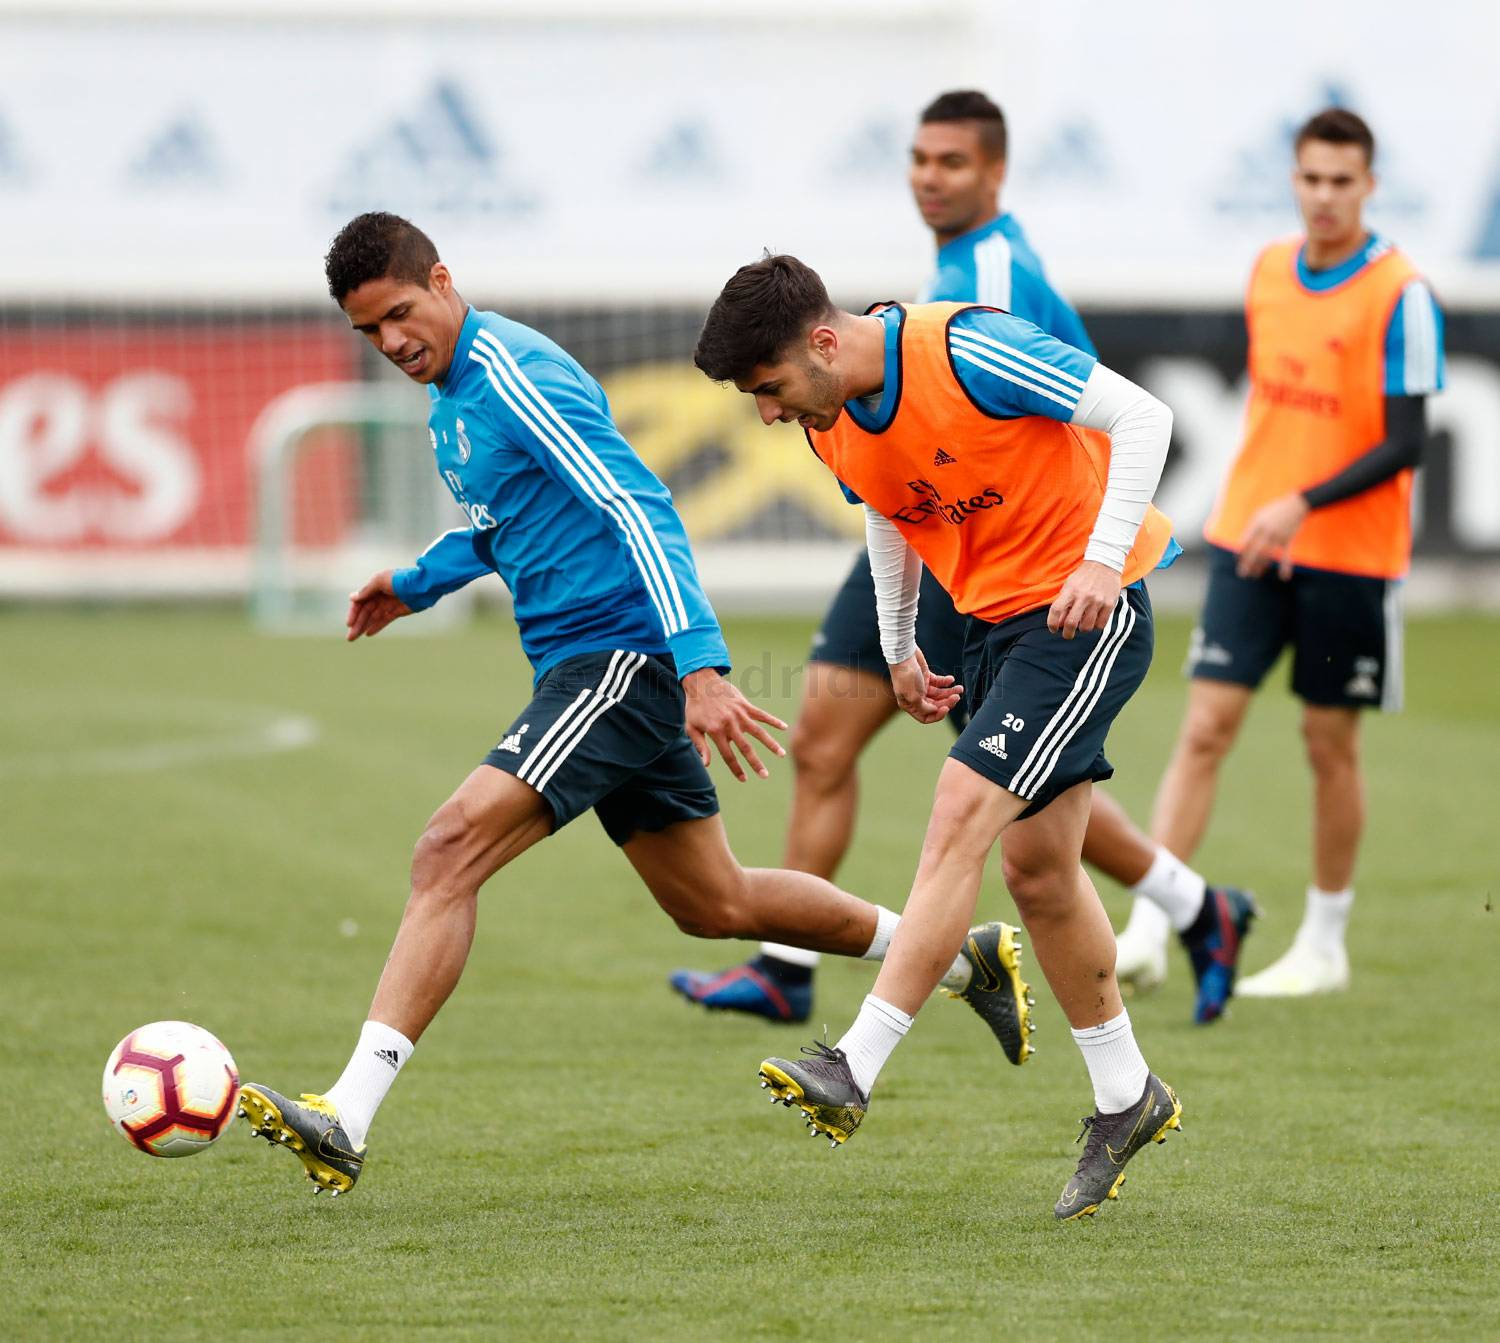 Real Madrid - Entrenamiento del Real Madrid - 01-04-2019